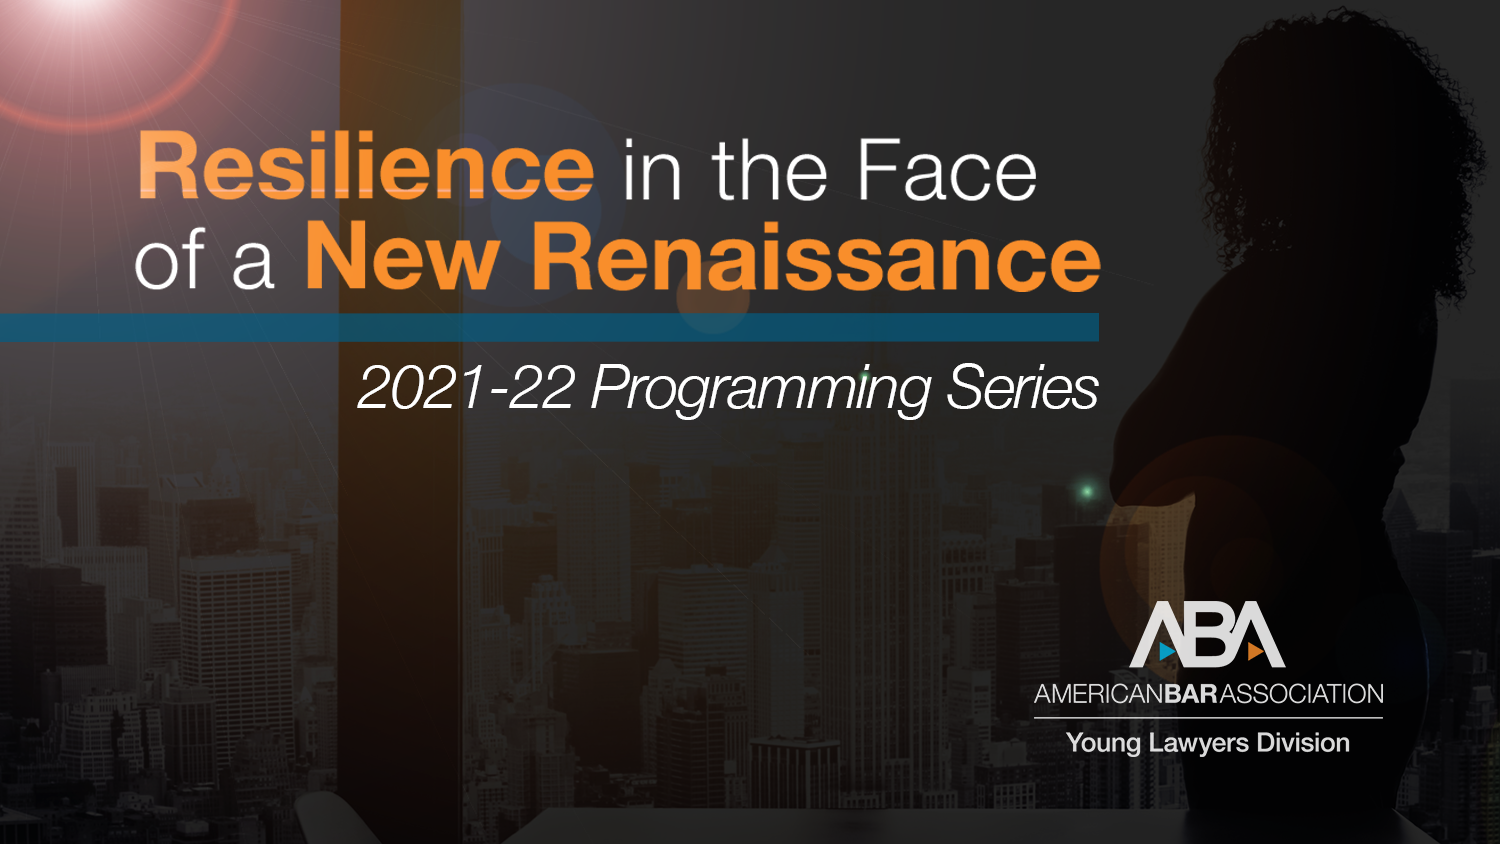 Resilience in the Face of a New Renaissance